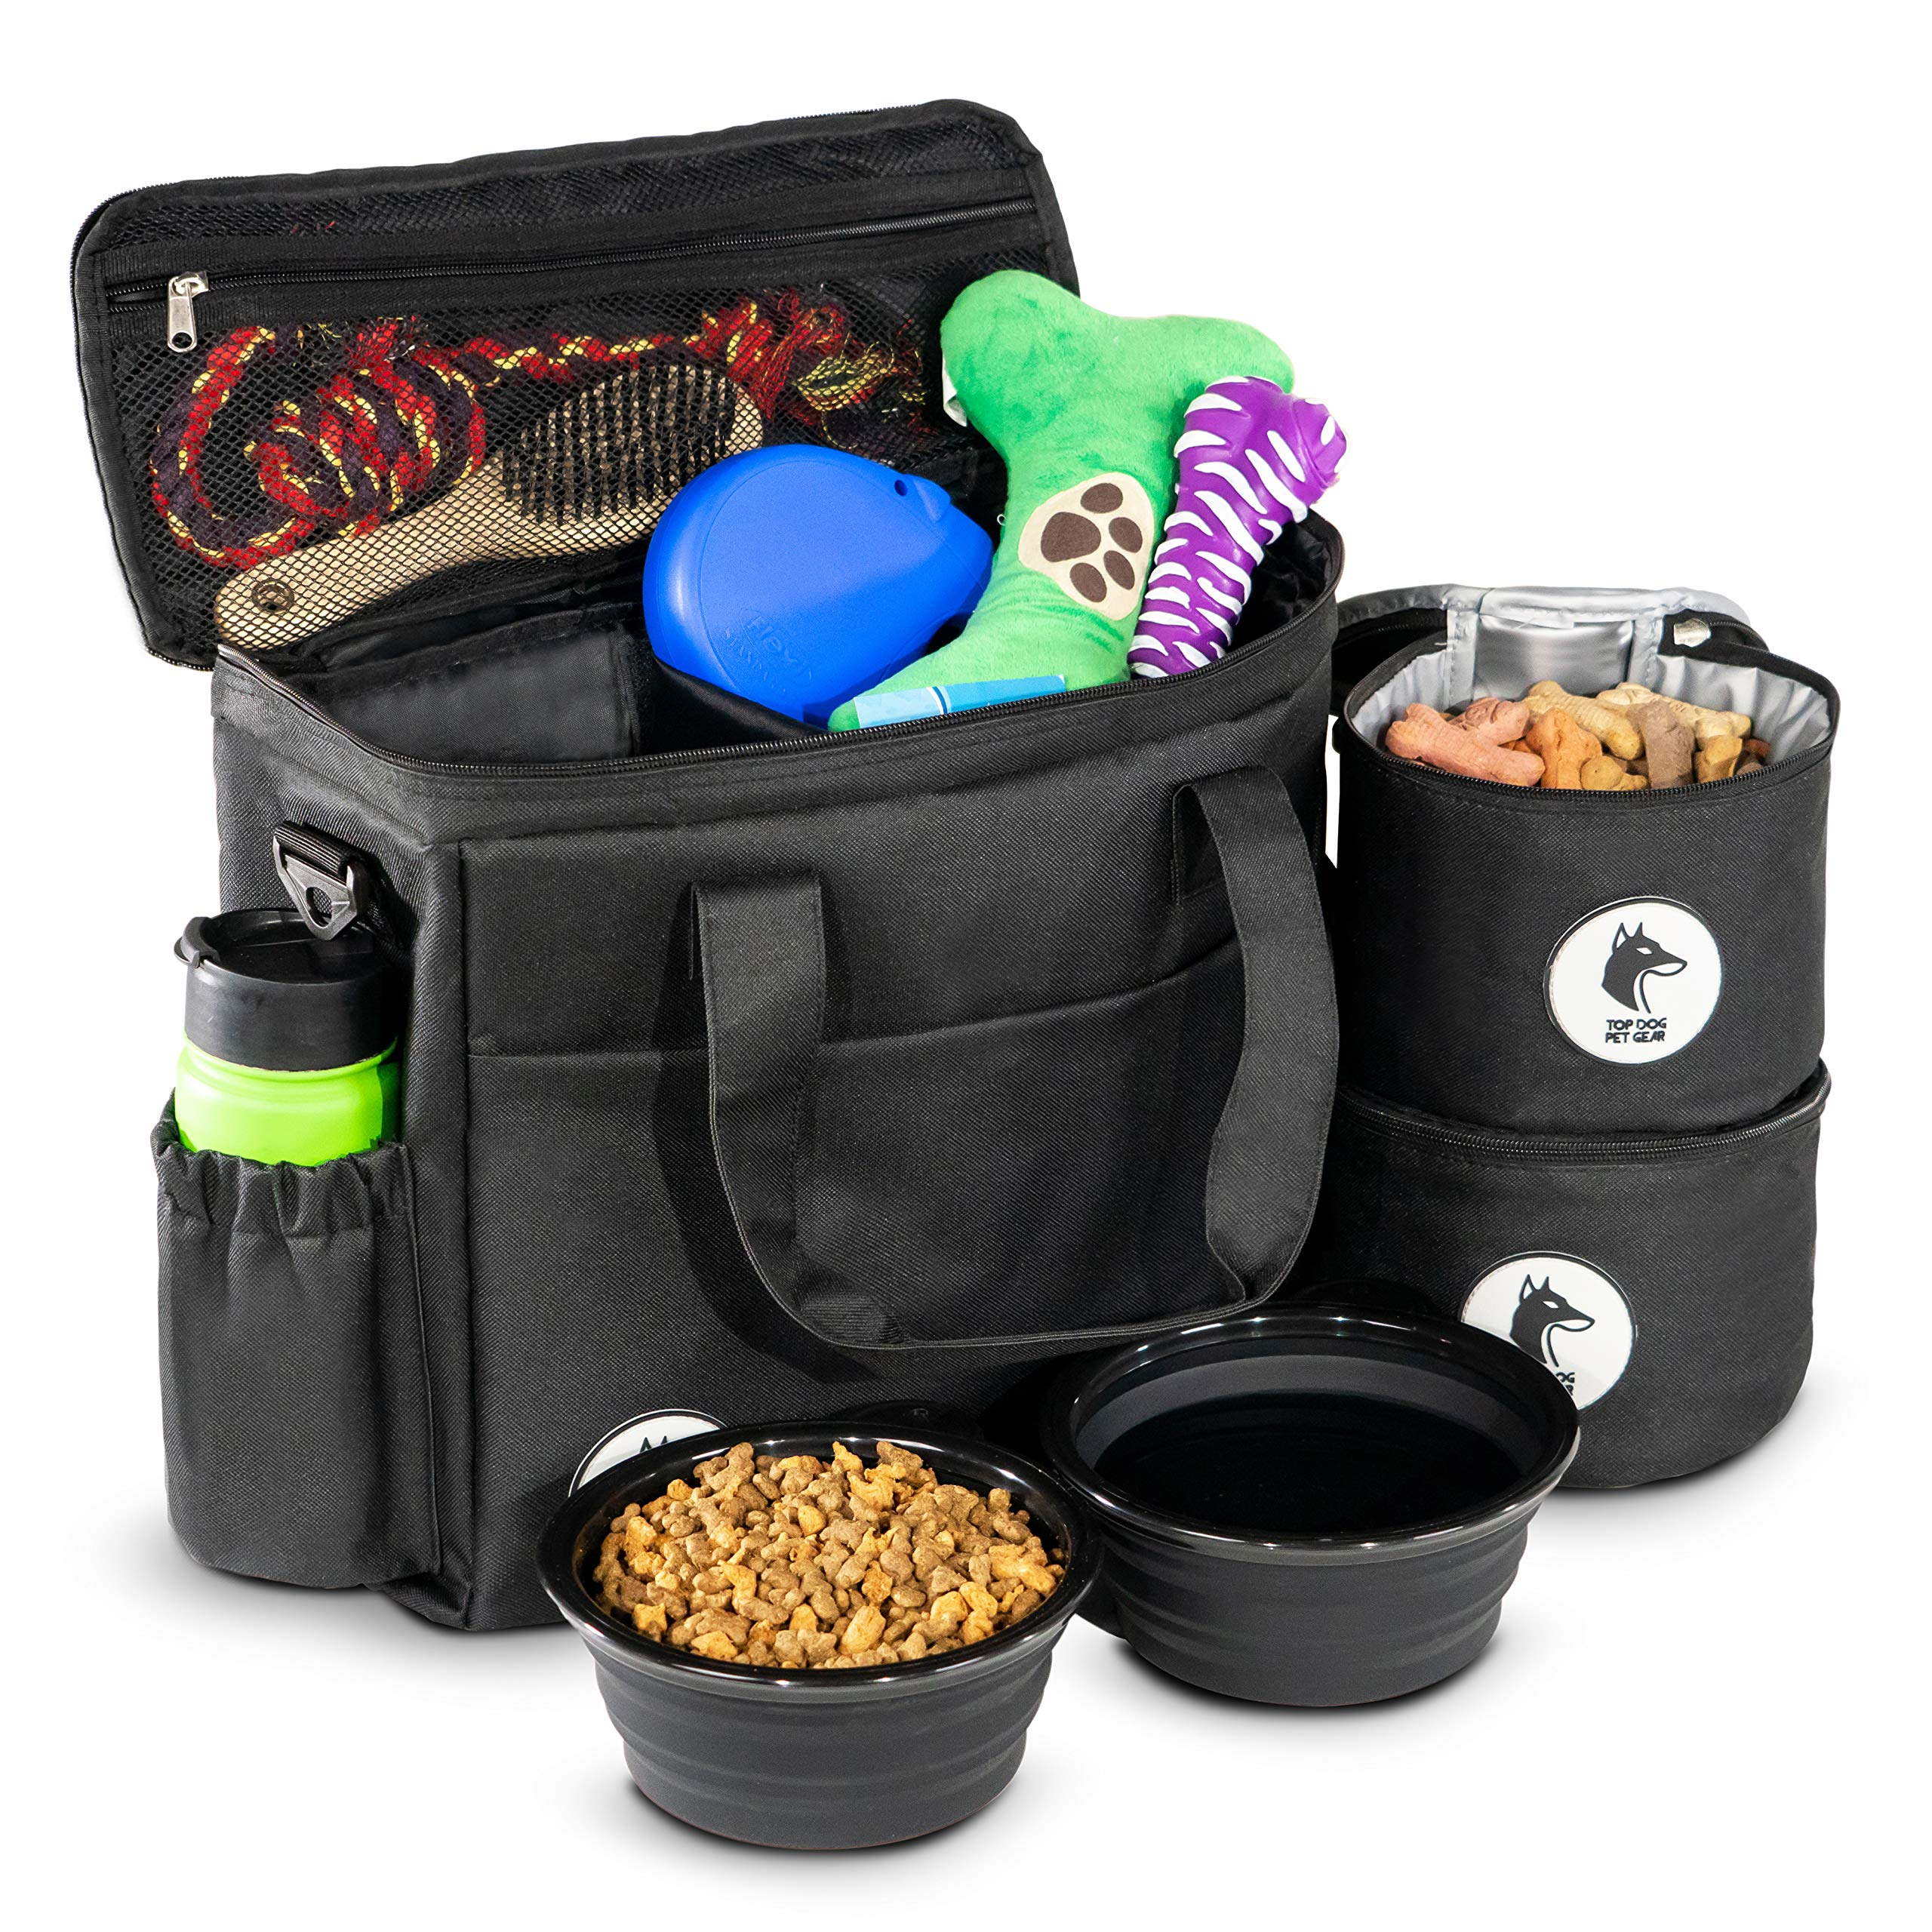 Top Dog Travel Bag - Airline Approved Travel Set for Dogs Stores All Your Dog Accessories - Includes Travel Bag, 2X Food Storage Containers and 2X Collapsible Dog Bowls - Black by Top Dog Pet Gear